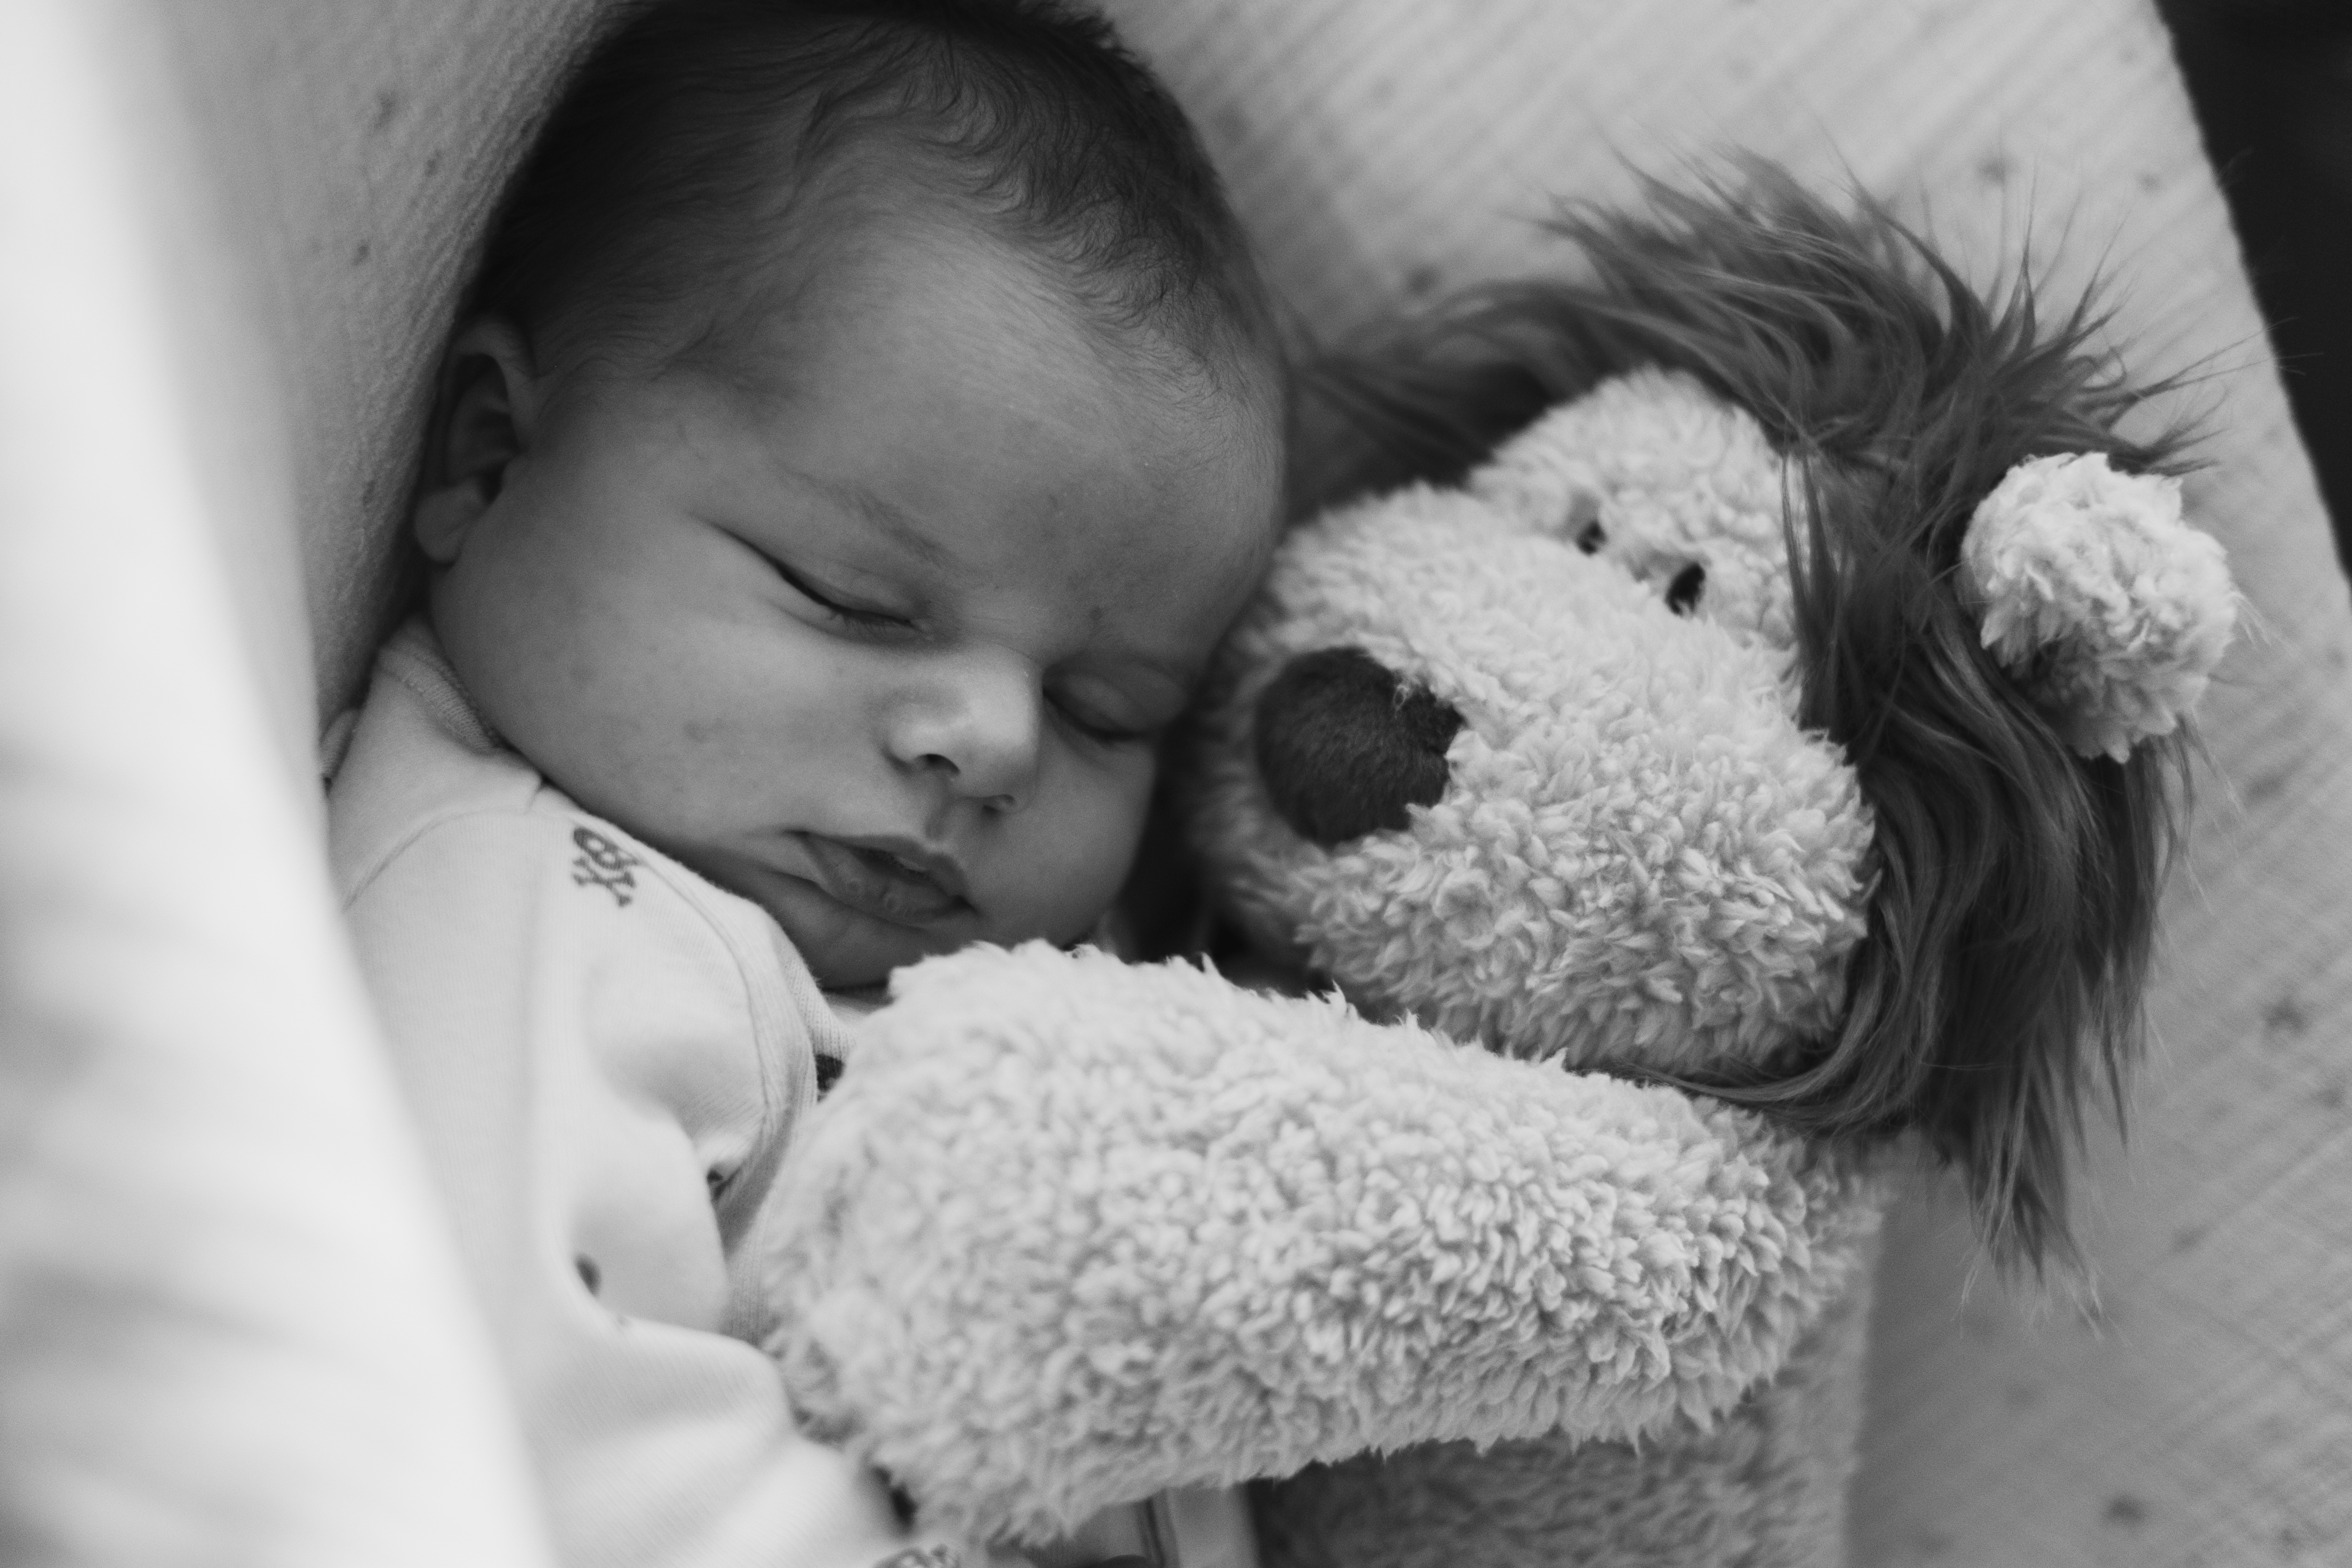 A black and white photo of a baby sleeping with a stuffed lion.